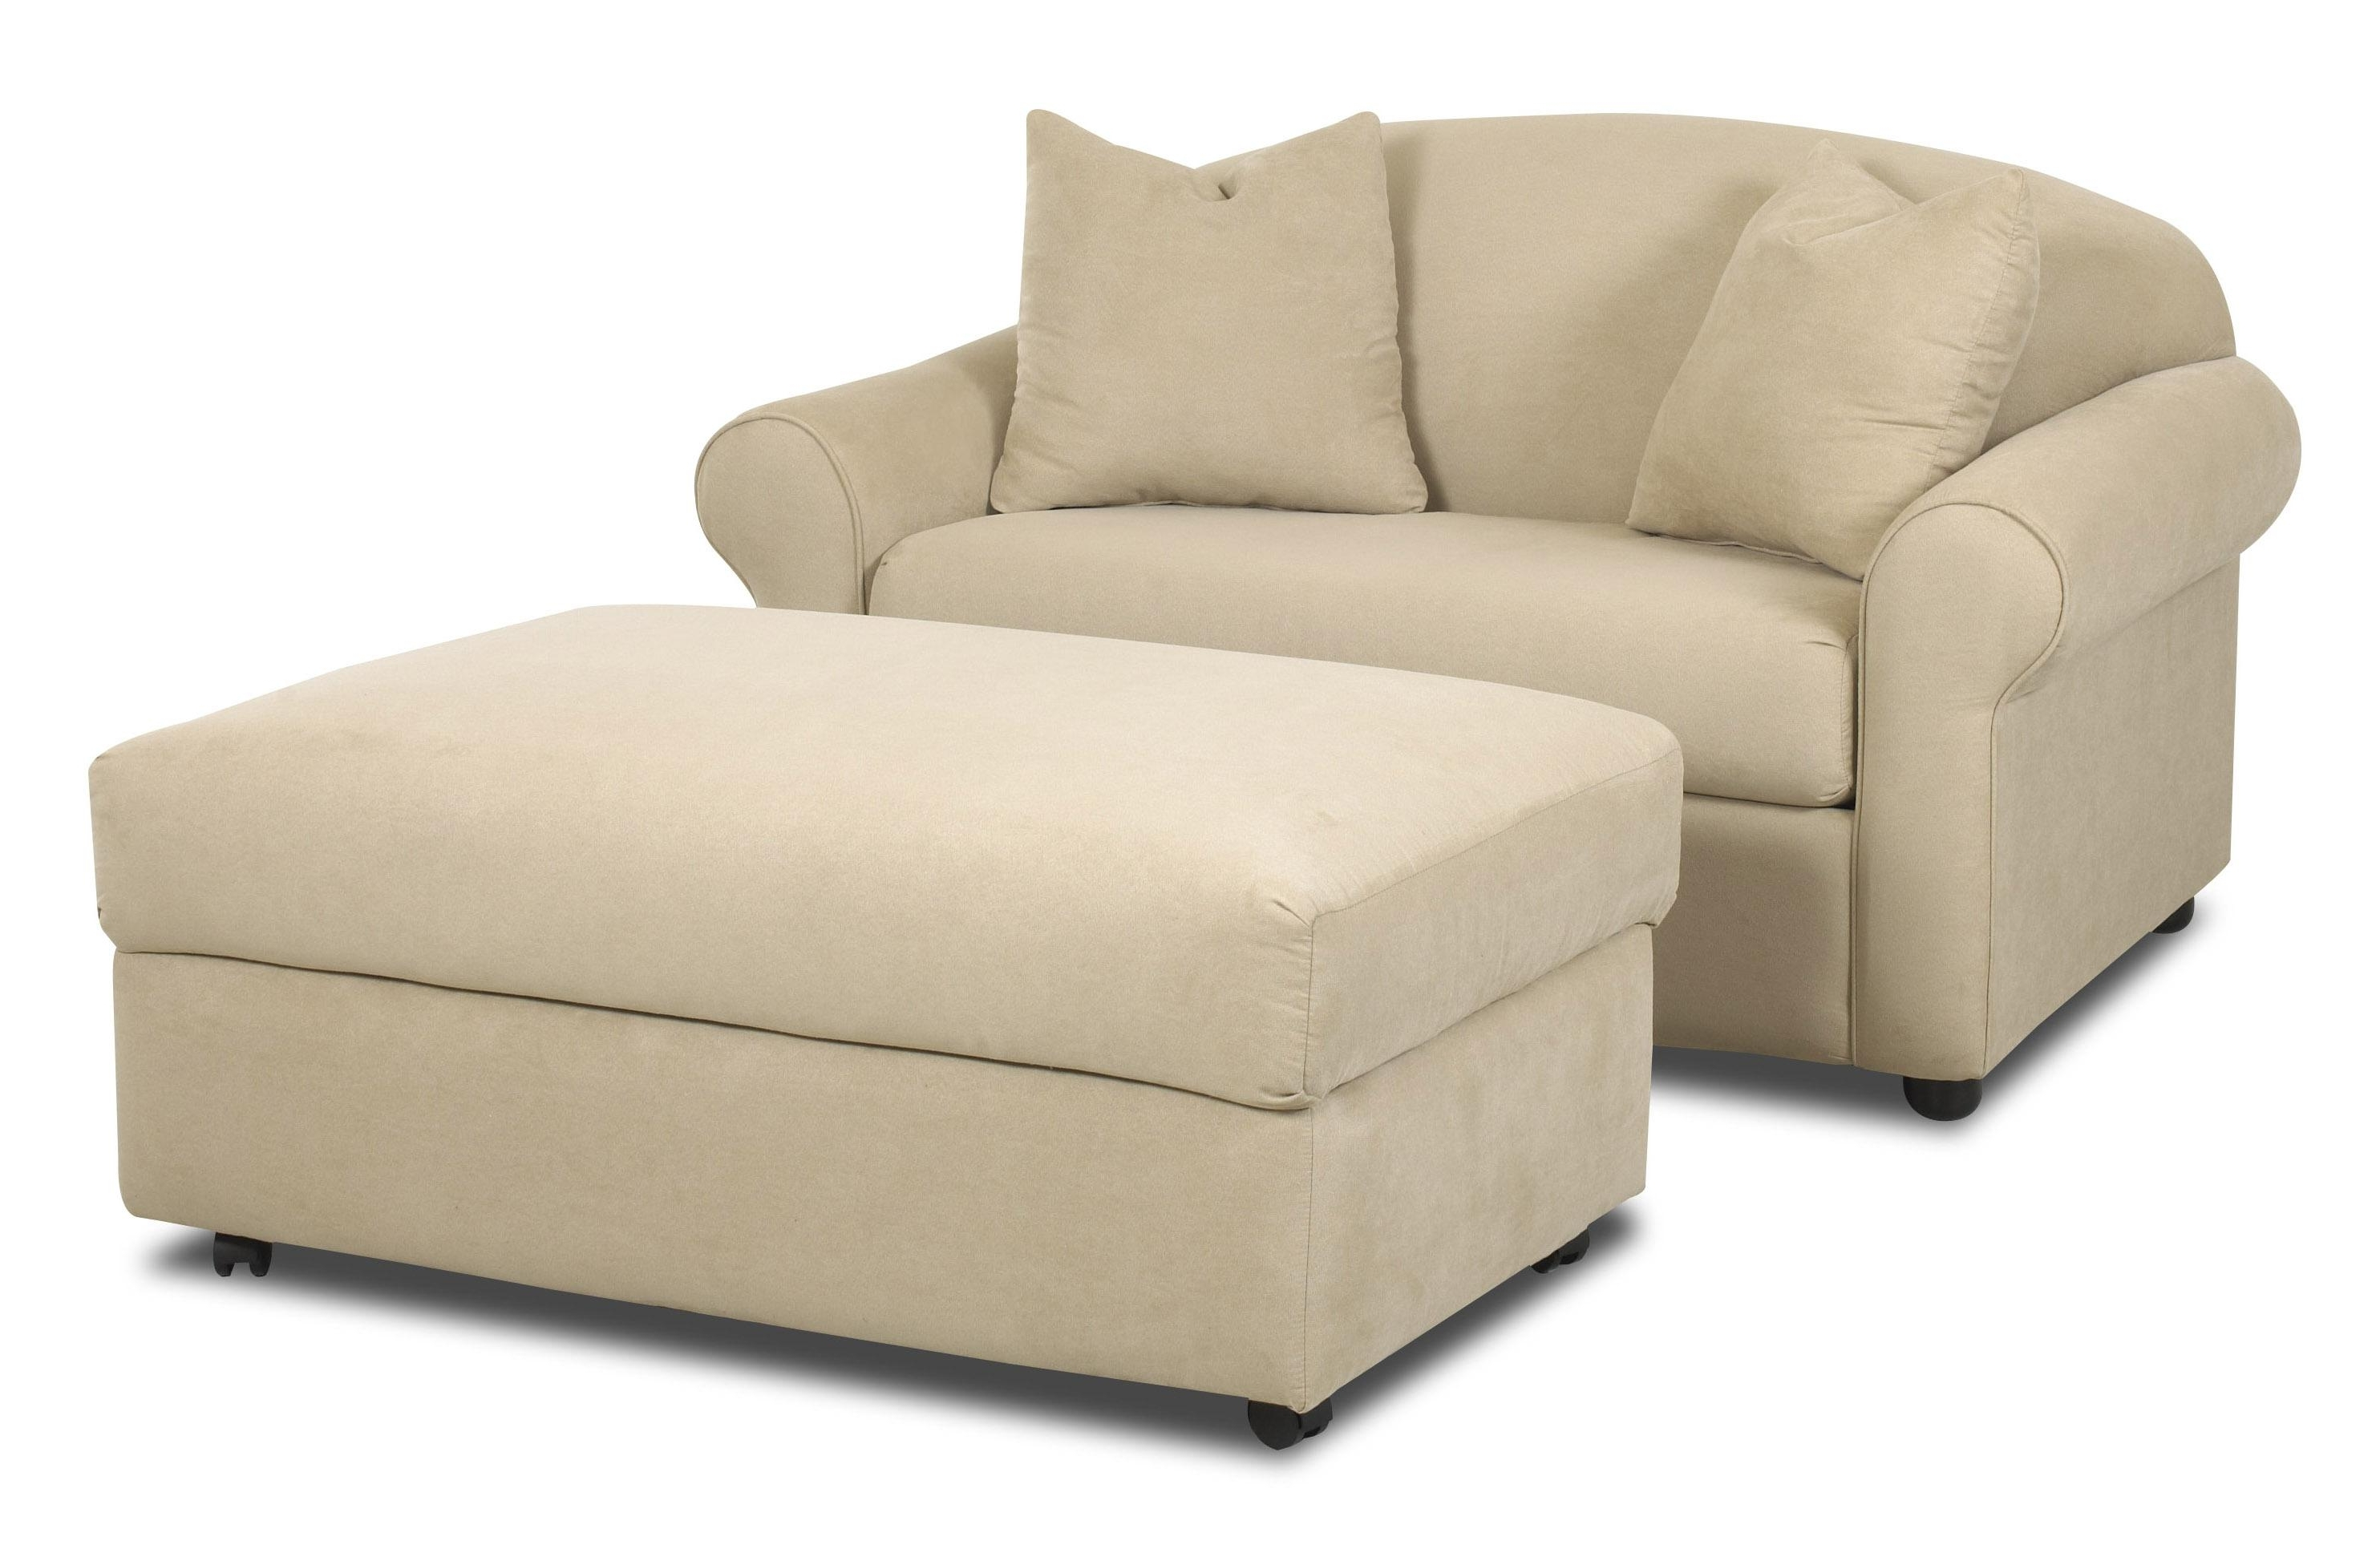 Small Sofas And Chairs With Famous Small Sleeper Sofa Chairs With Wingback And White Fabric Cover (View 3 of 15)